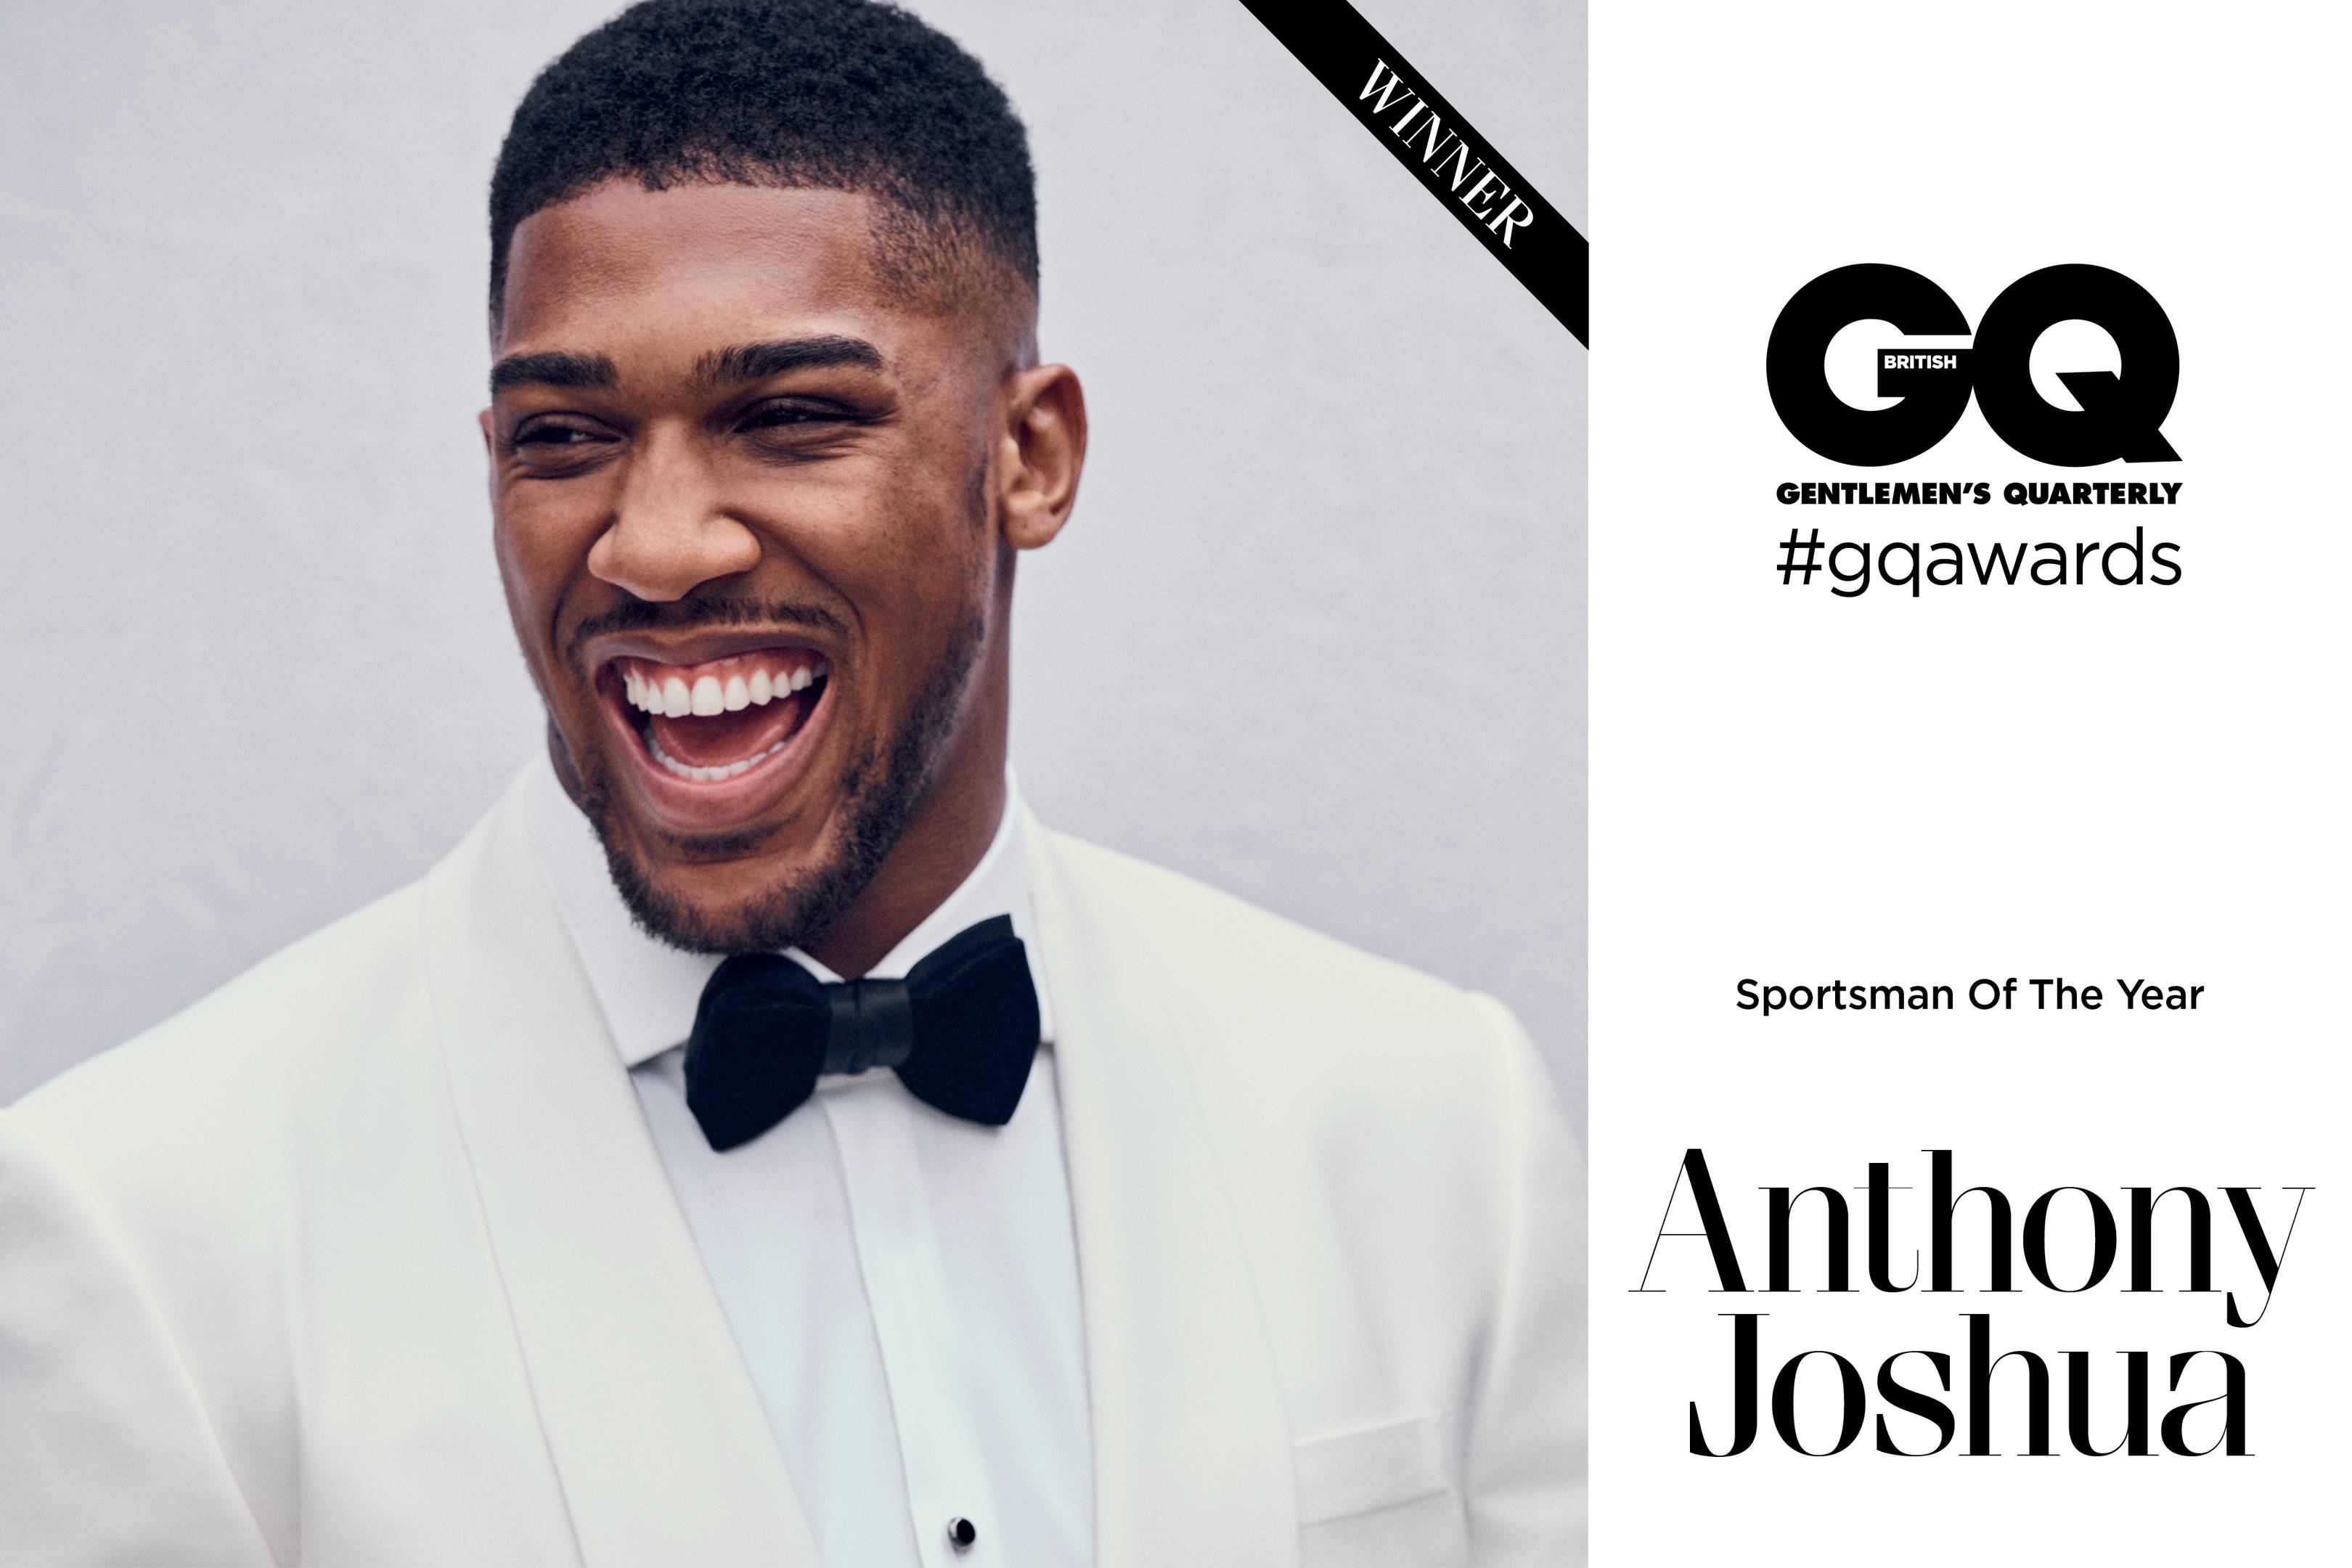 All the winners of the GQ Men of the Year Awards 2017 | British GQ